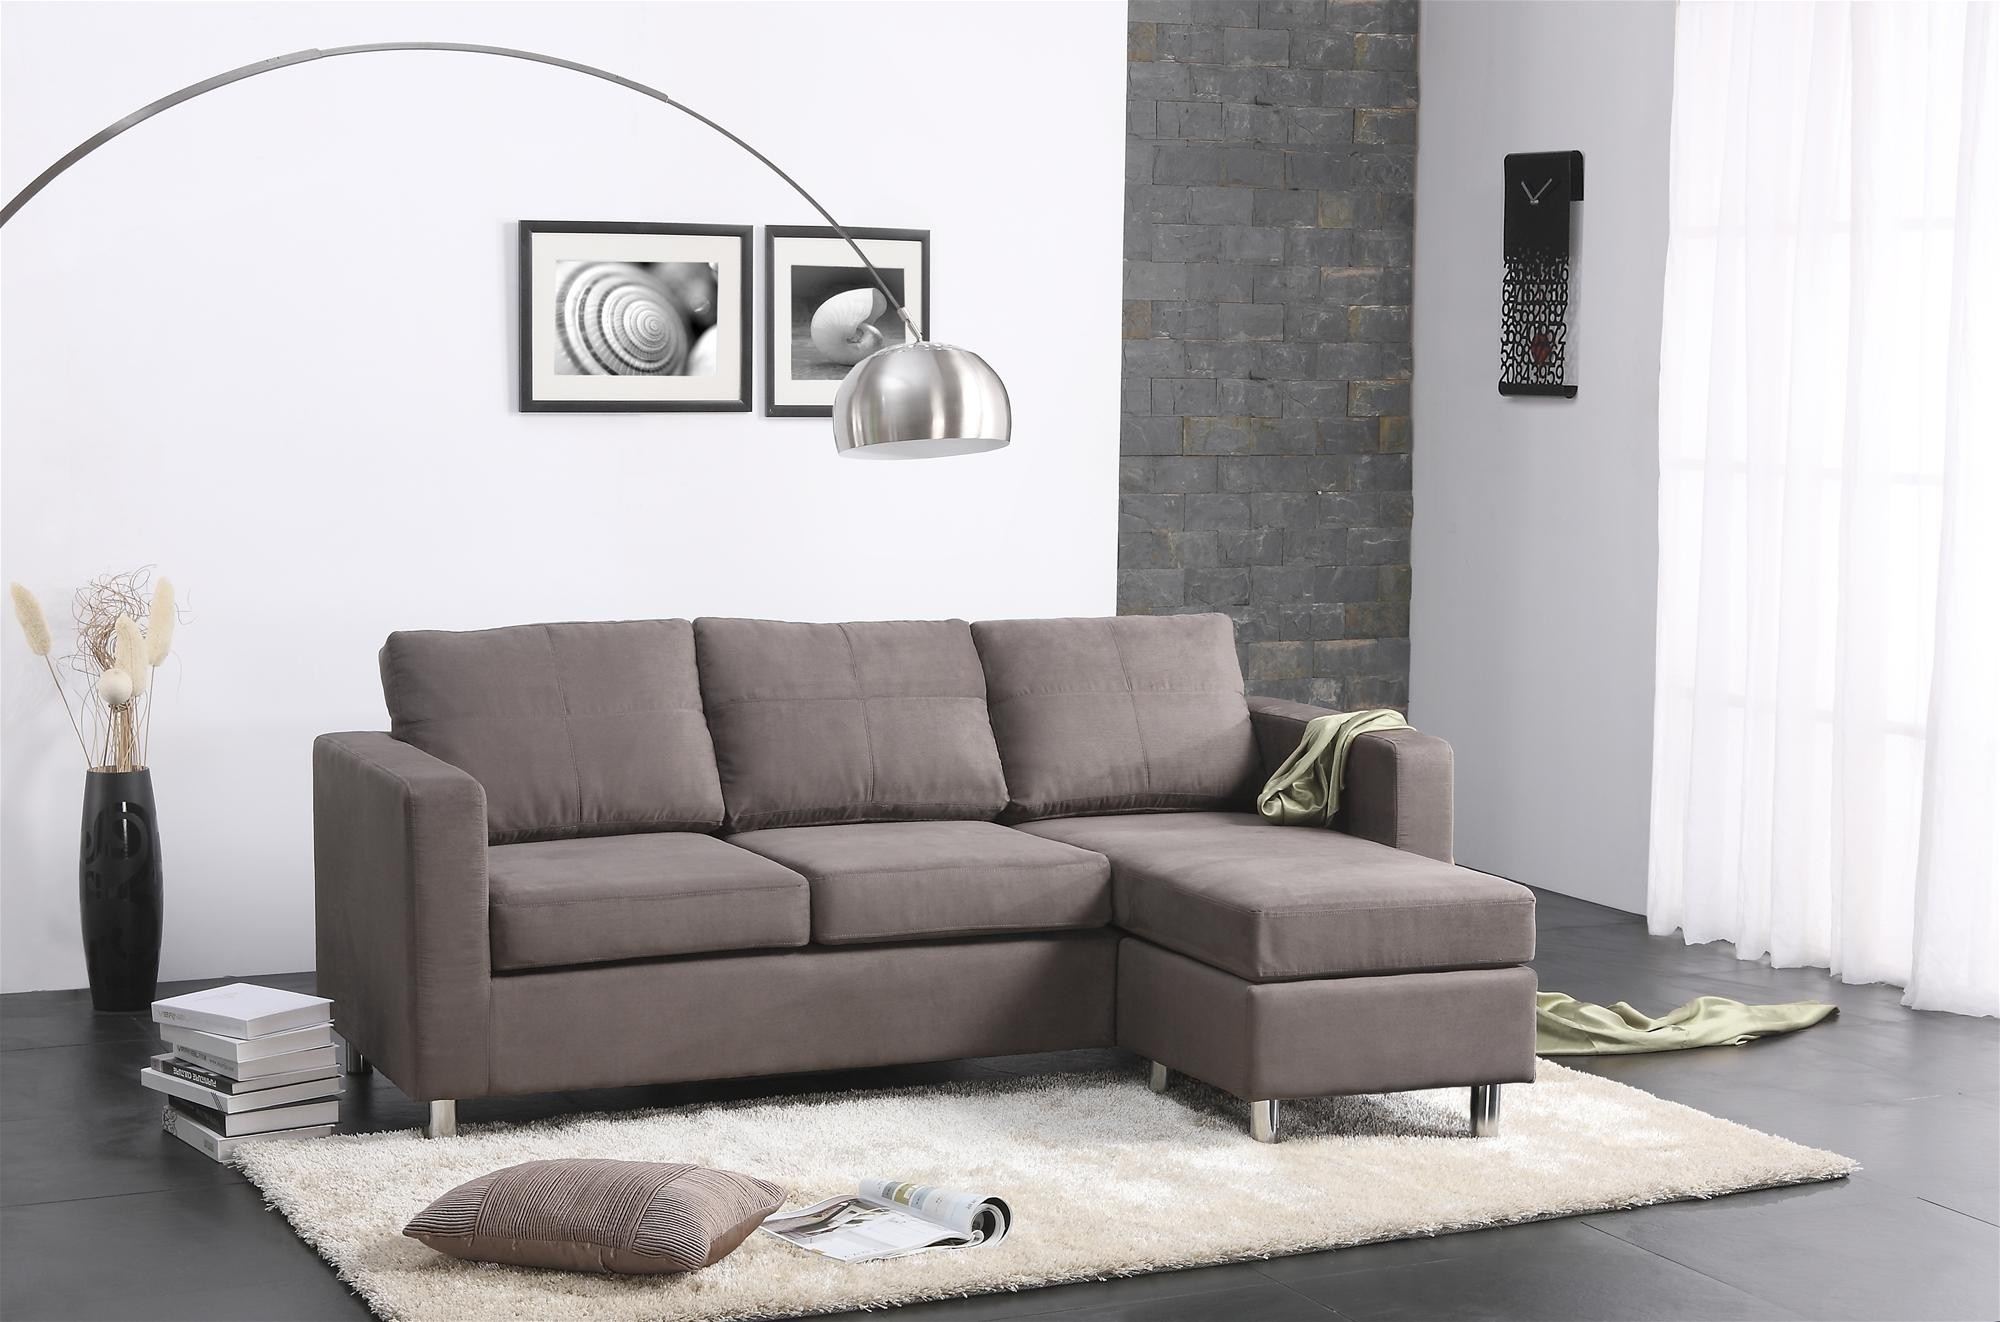 Condo Furniture Sectional Sofa • Sectional Sofa Intended For Sectional Sofas For Condos (Image 4 of 10)